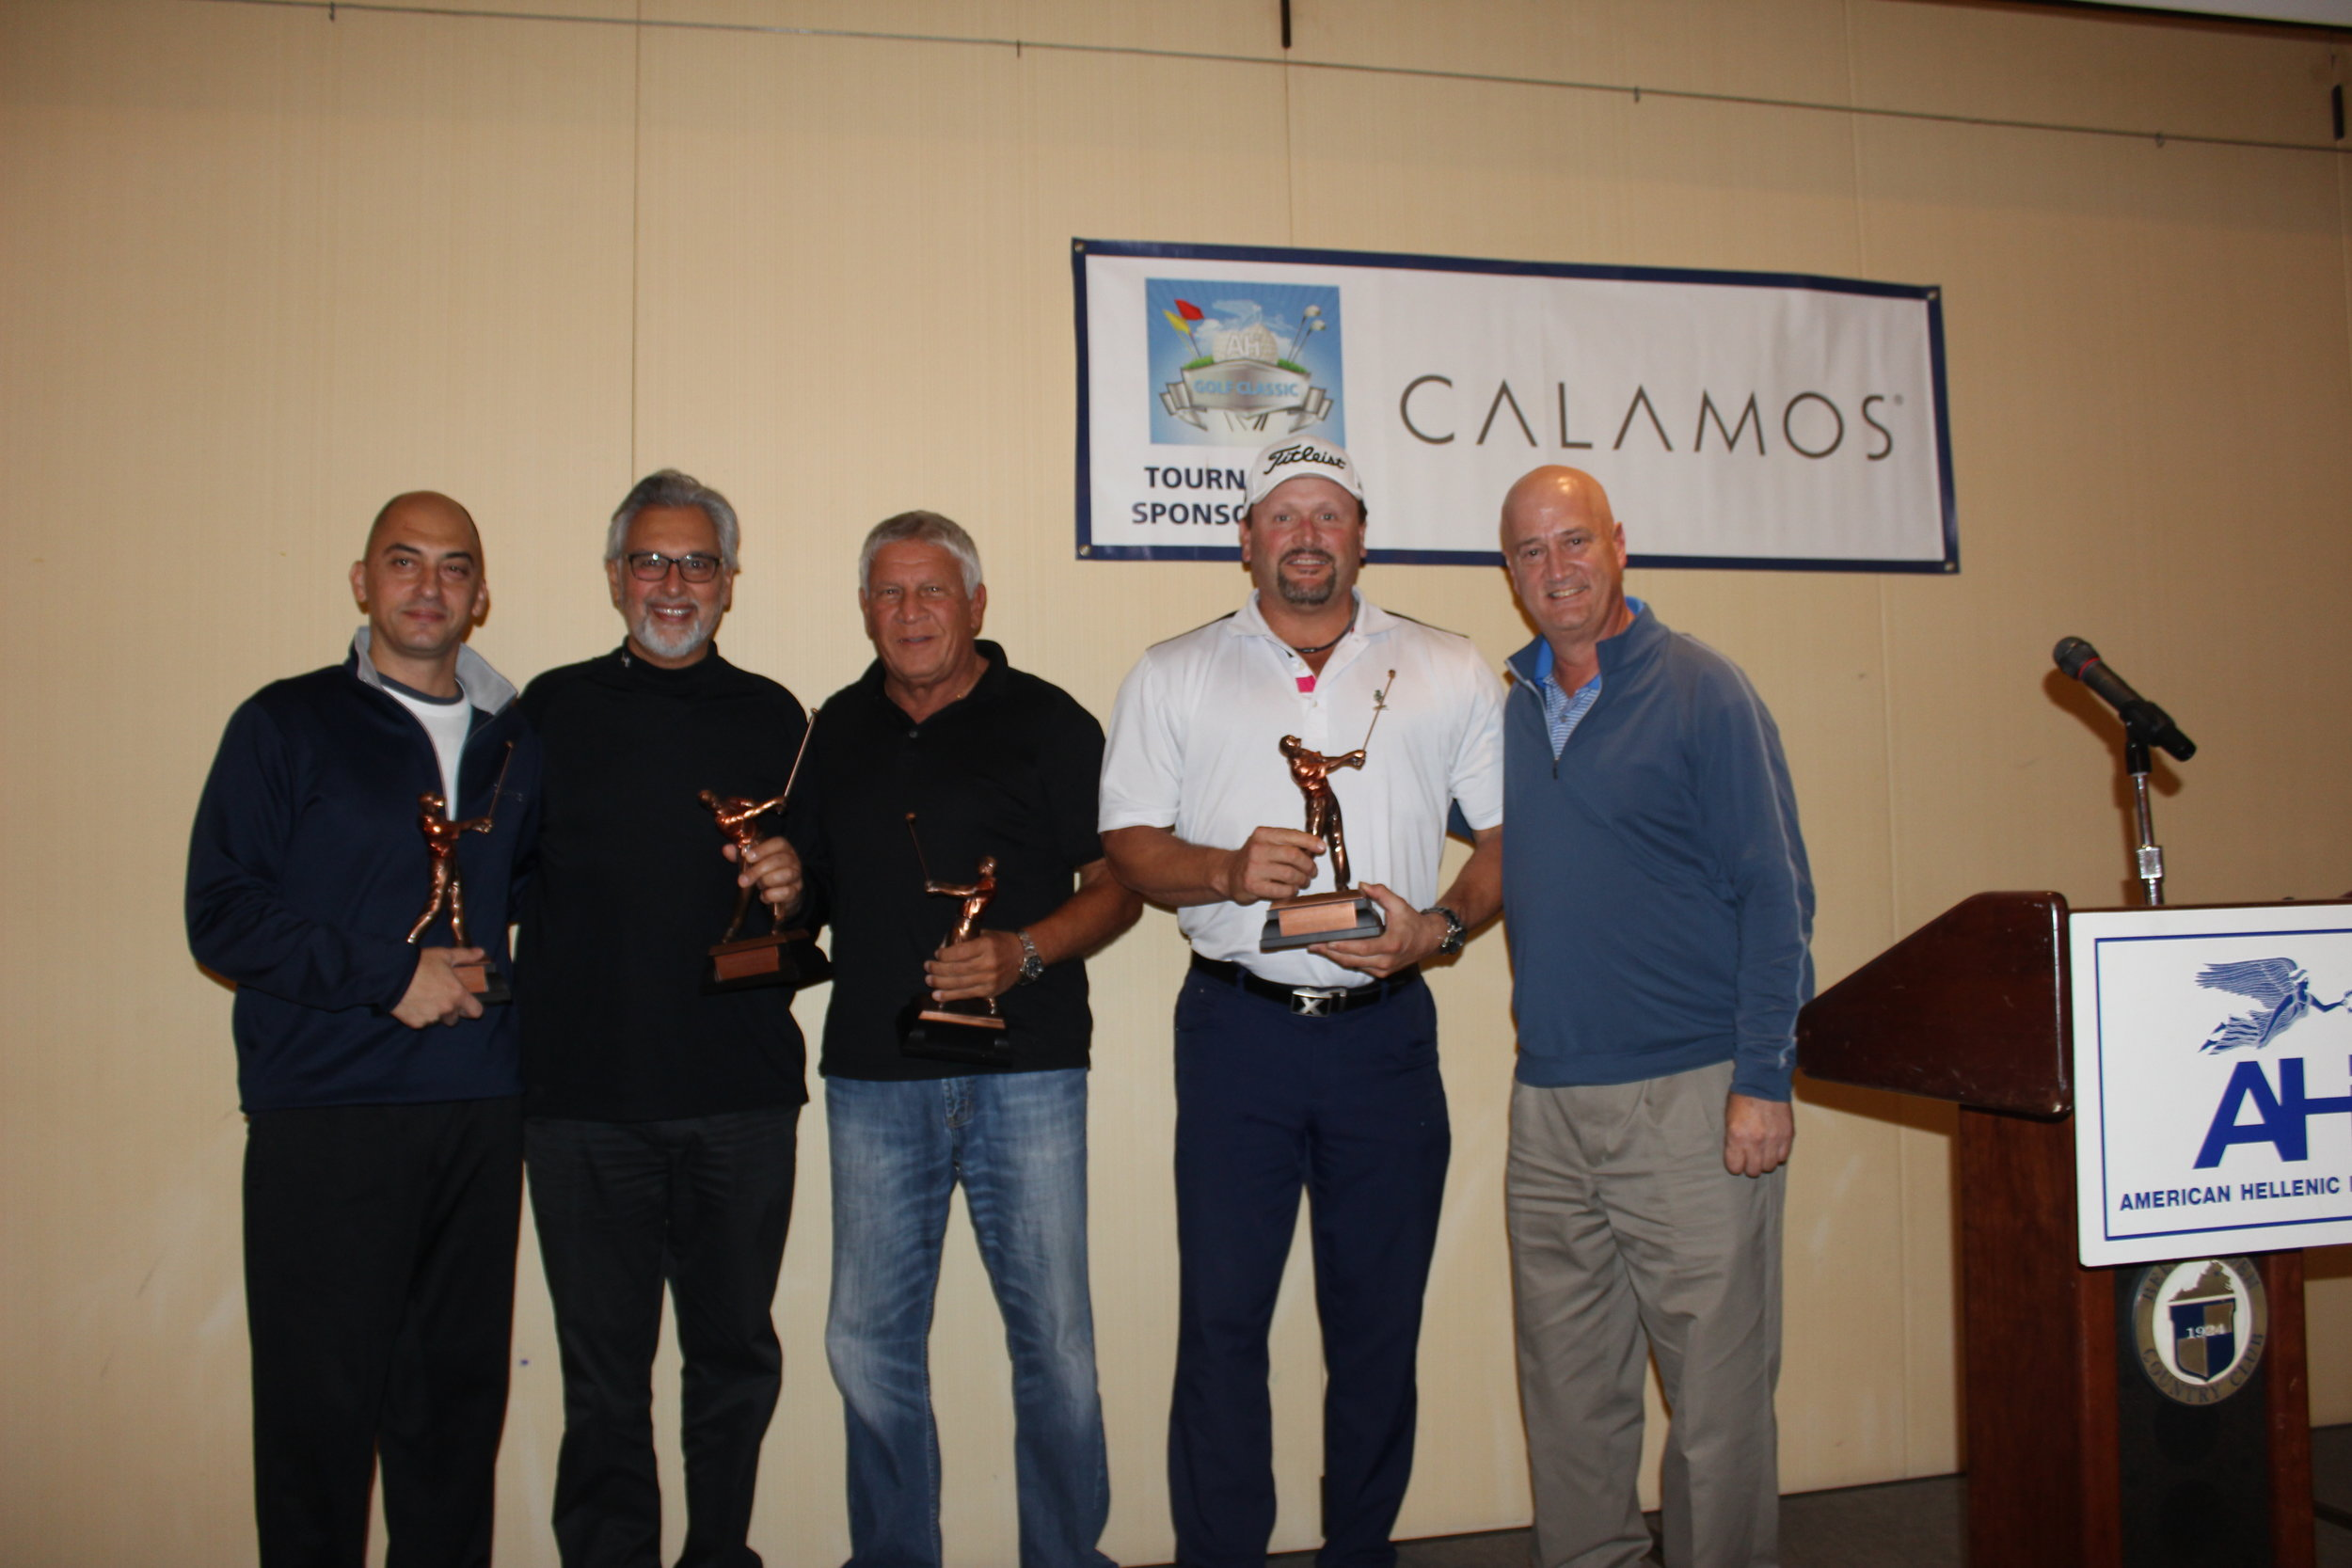 Second Place Team: (L-R) Yanni Sianis, Father Demitri Antokas, Jim Daopoulos, Tommy Greene.